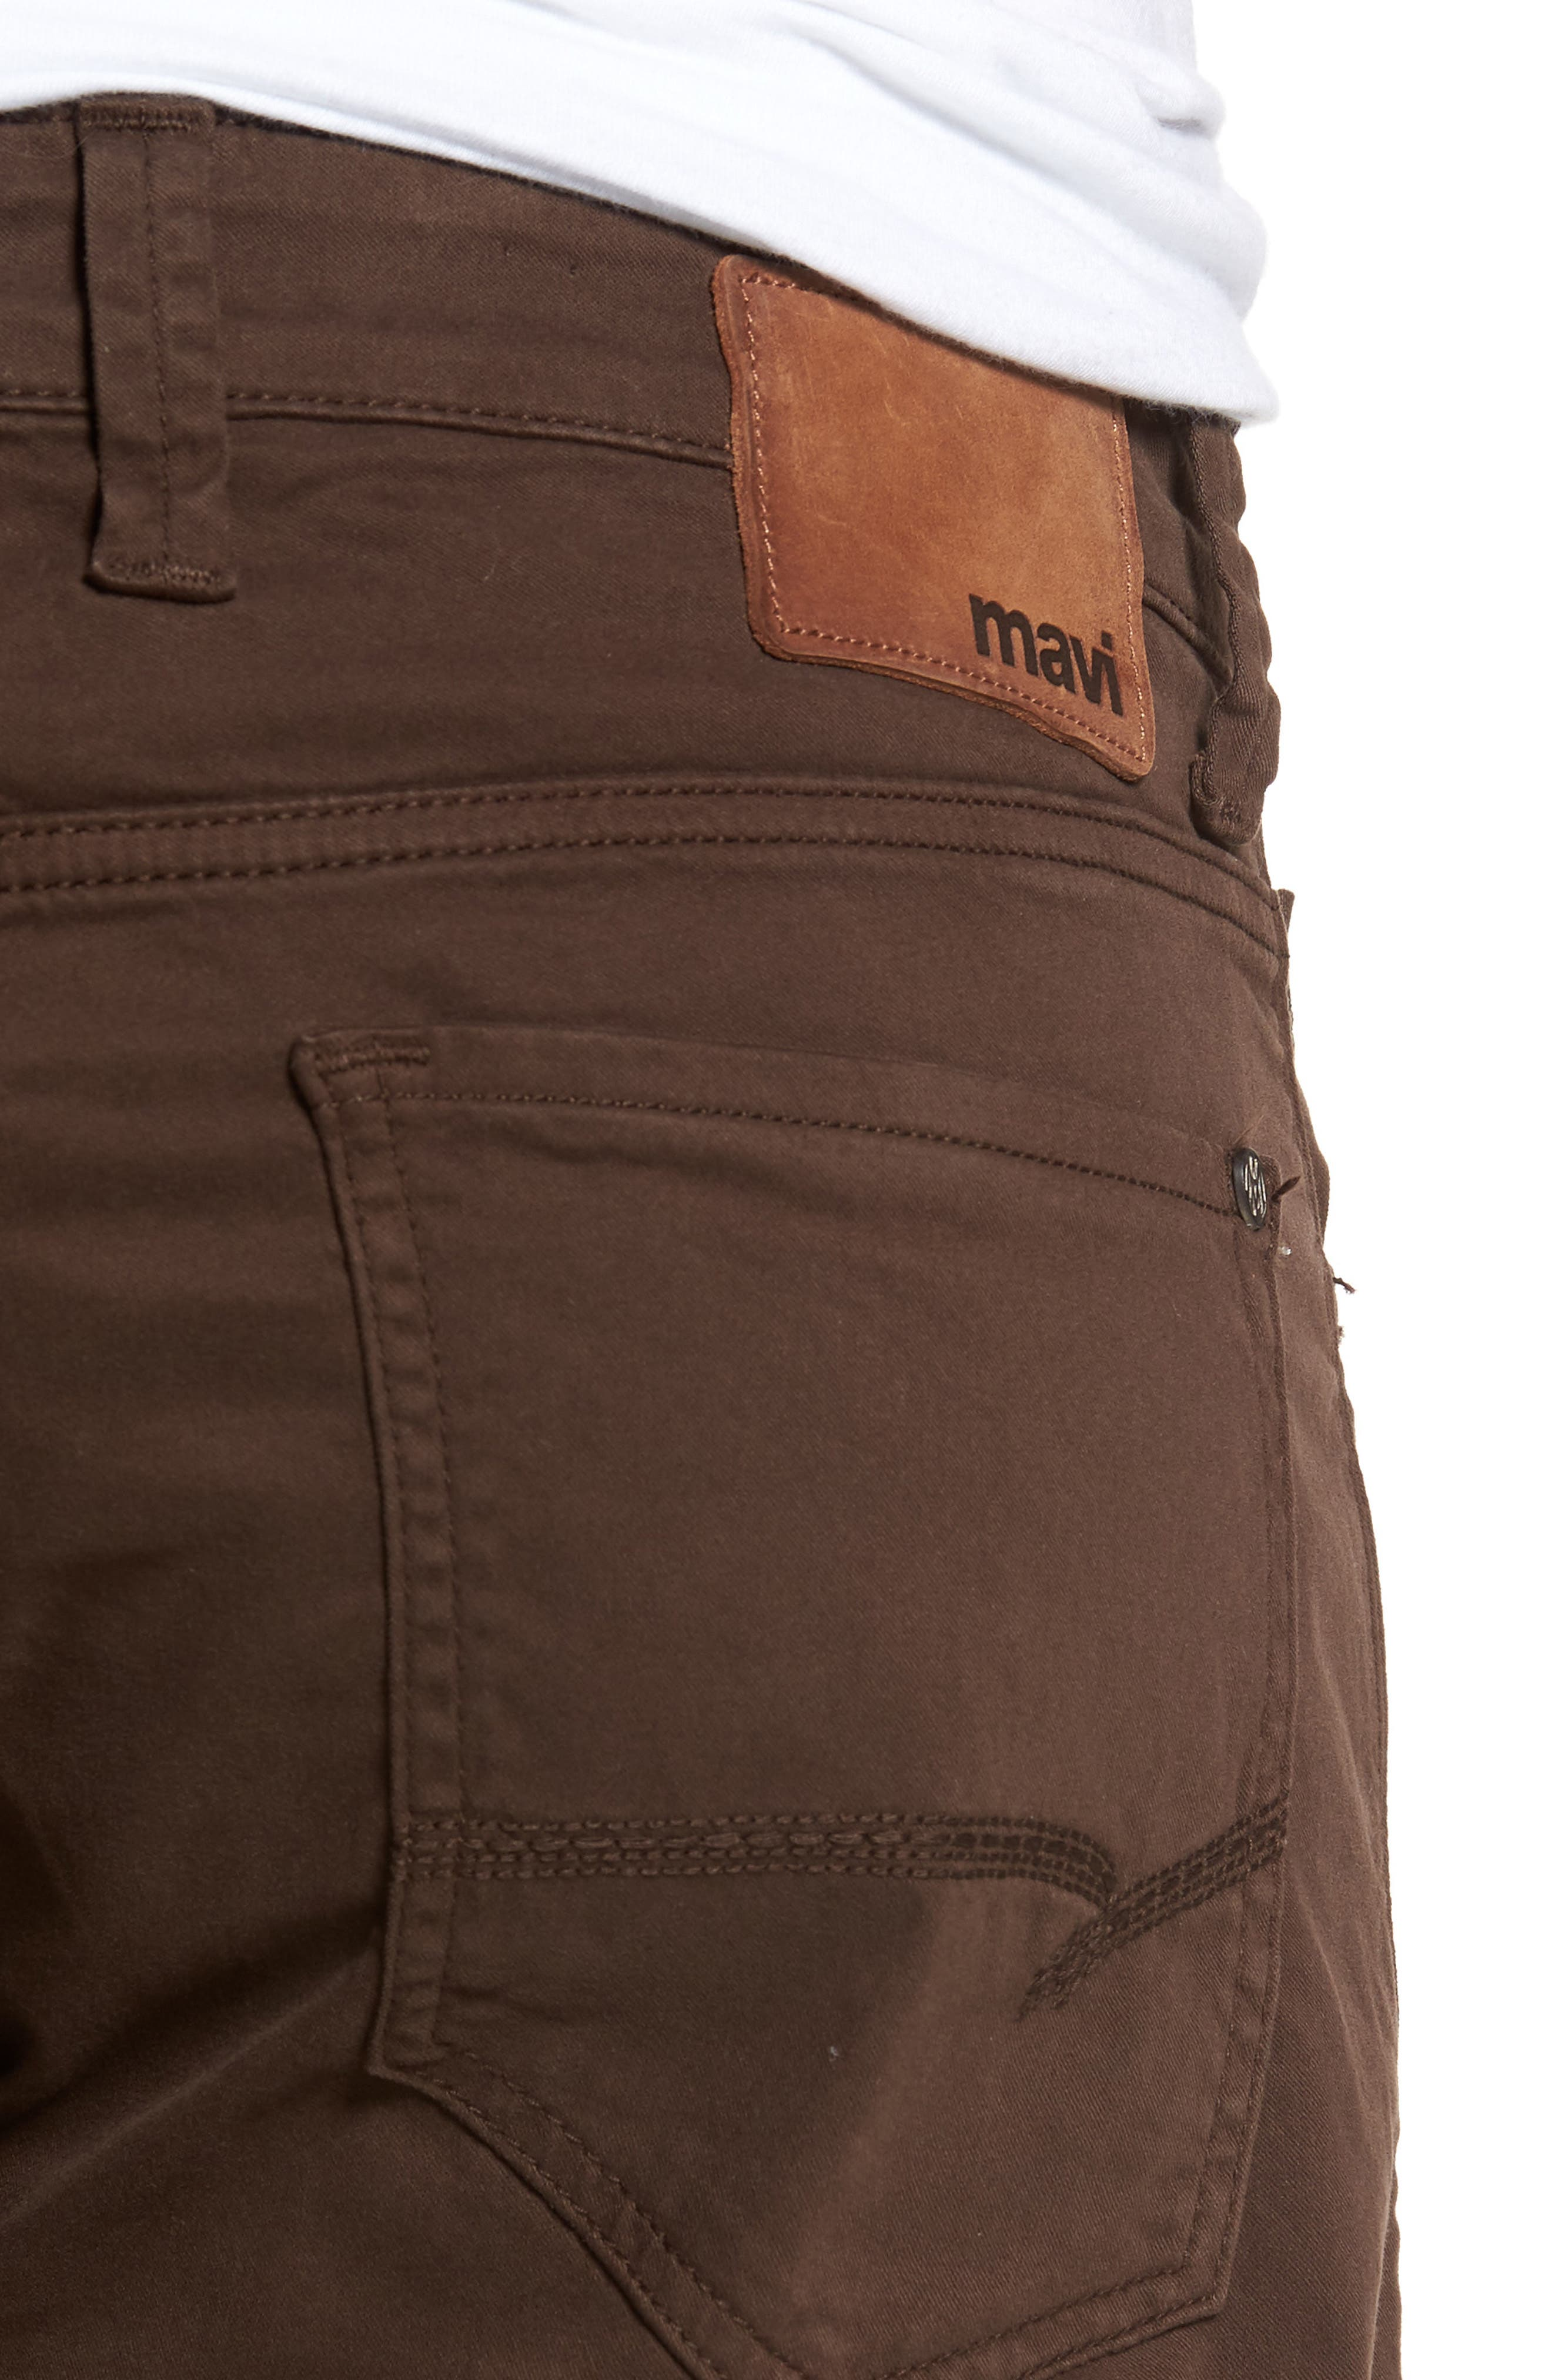 Zach Straight Fit Twill Pants,                             Alternate thumbnail 4, color,                             COFFEE BEAN TWILL